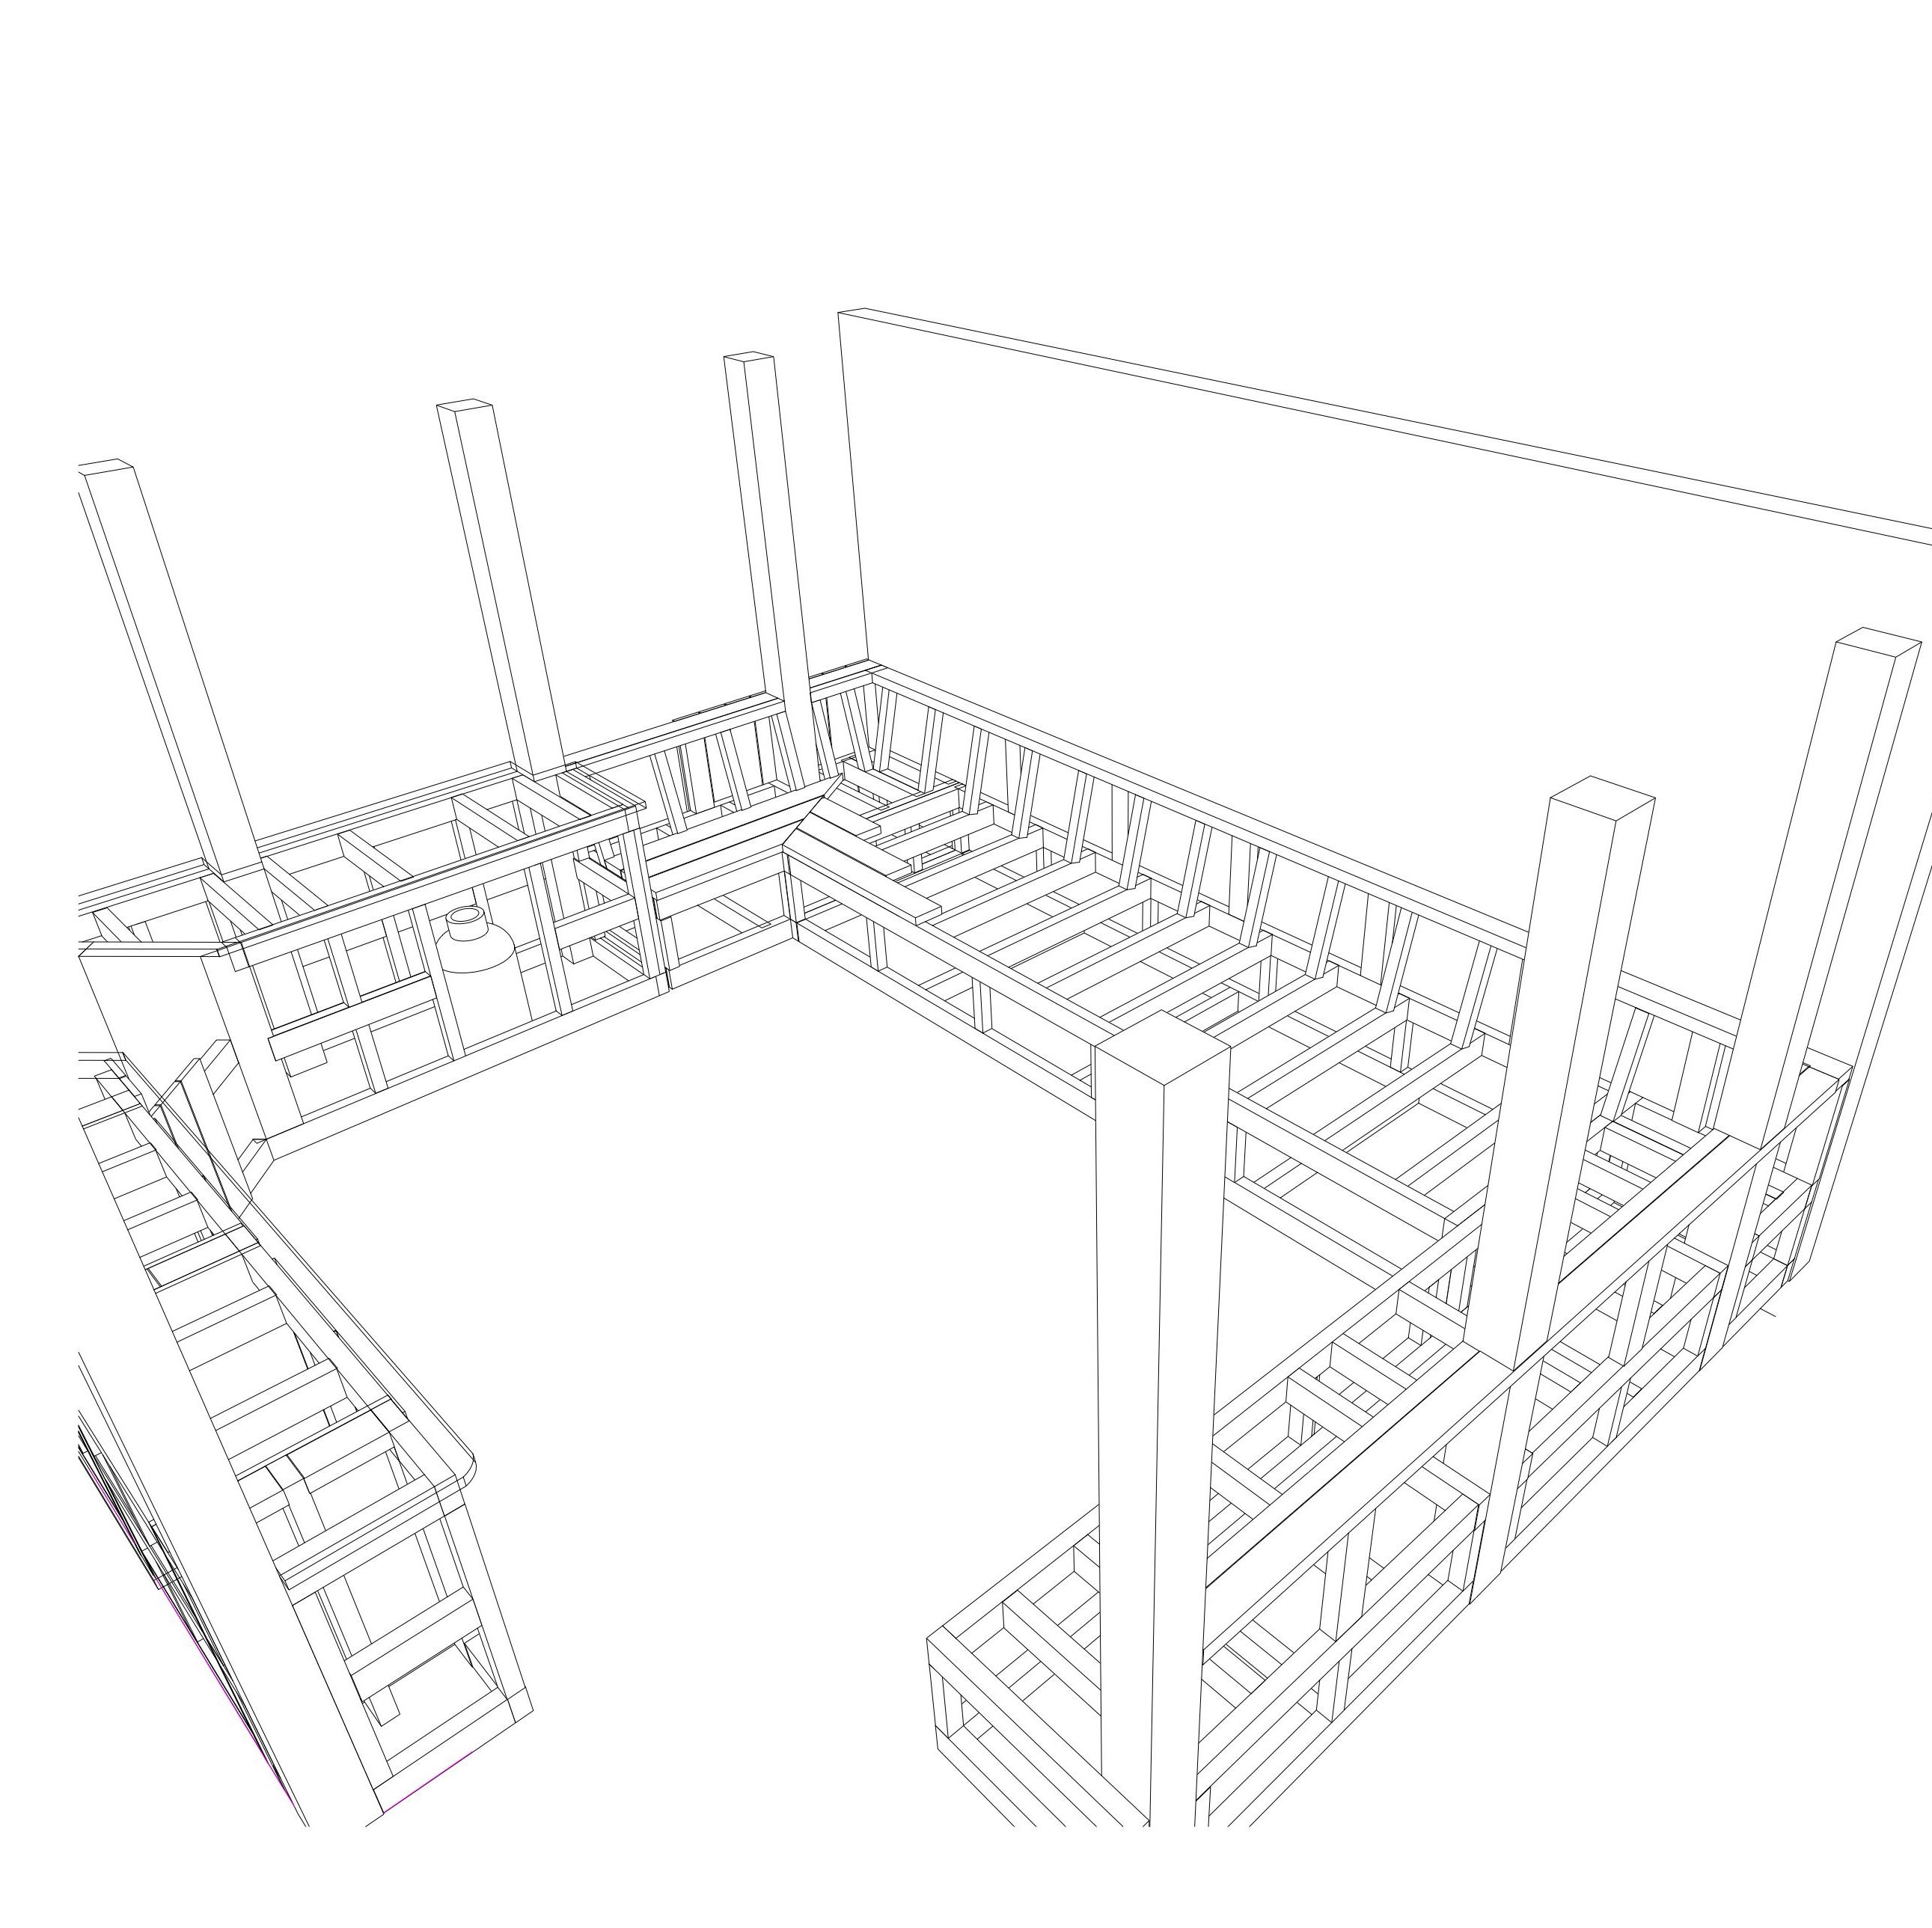 Outdoor Kitchen construction drawing